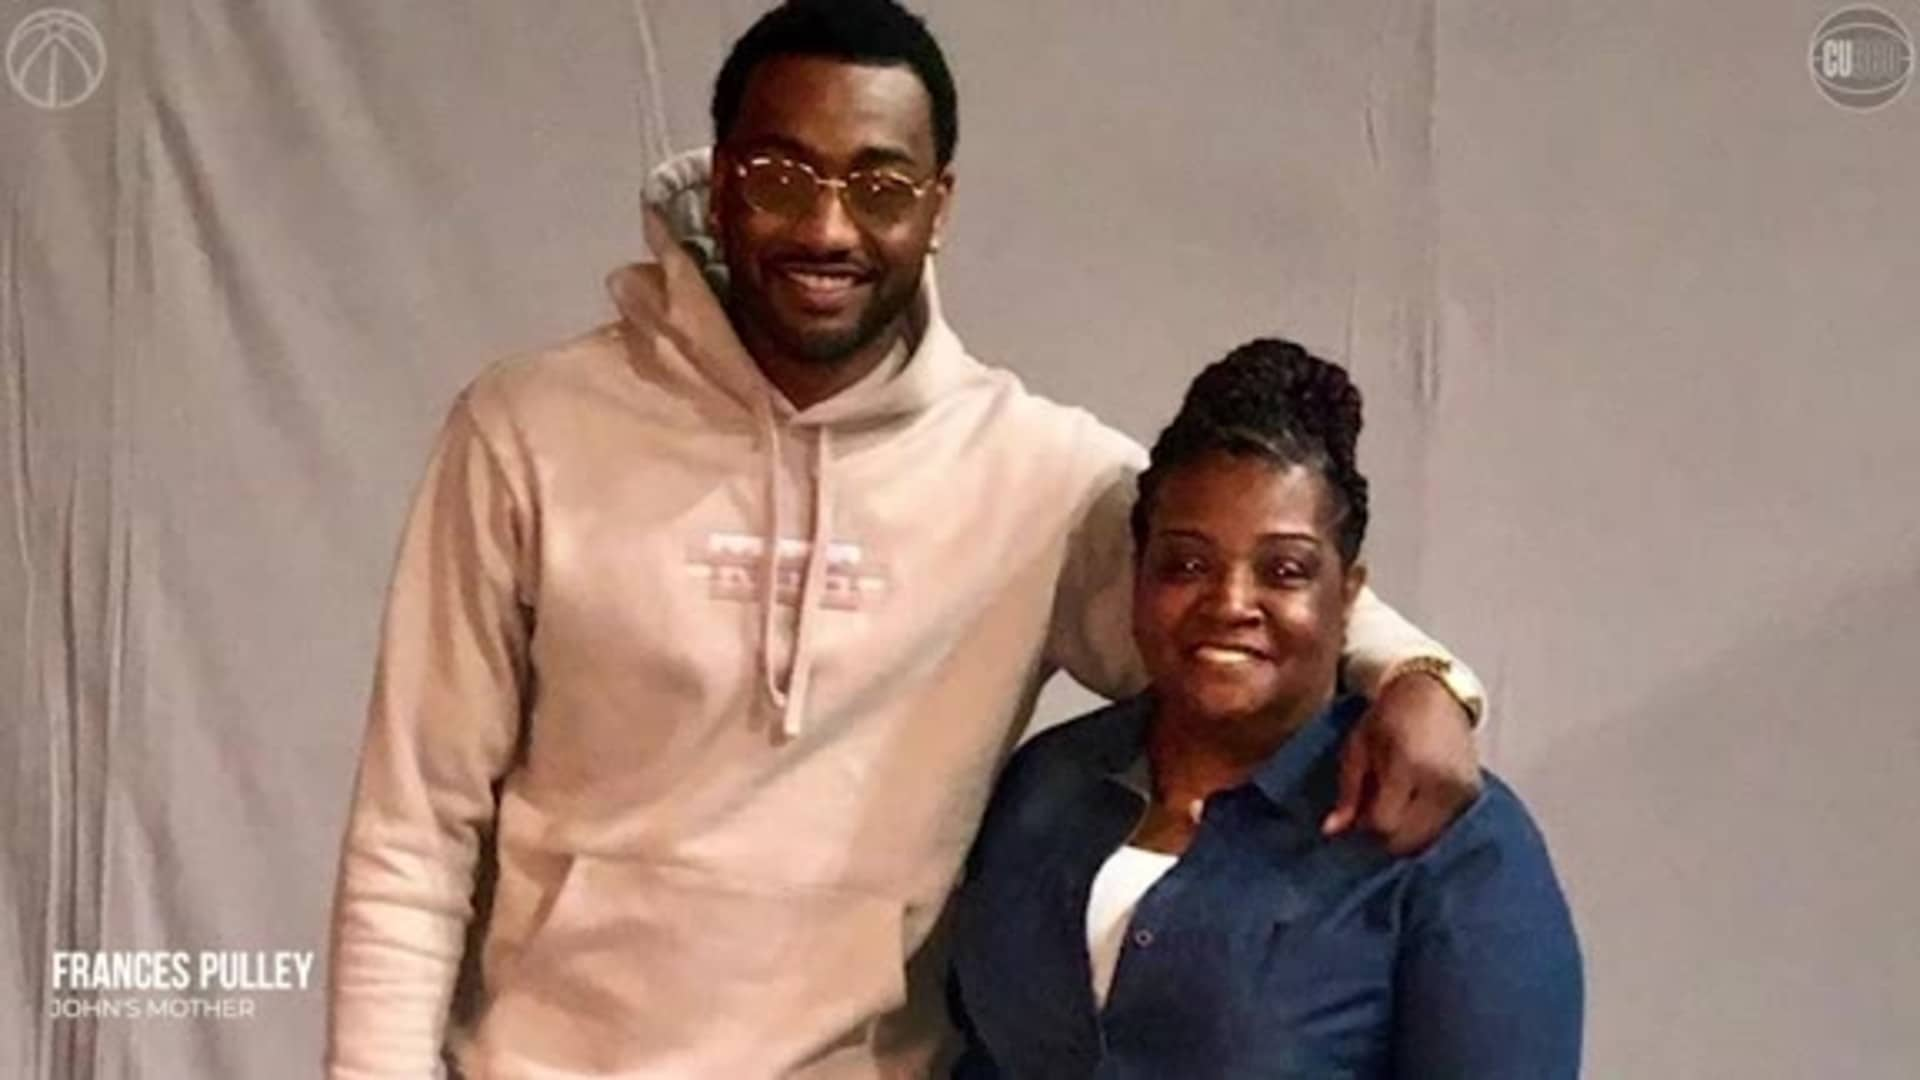 John Wall donates masks, meals to hospitals in honor of his mom